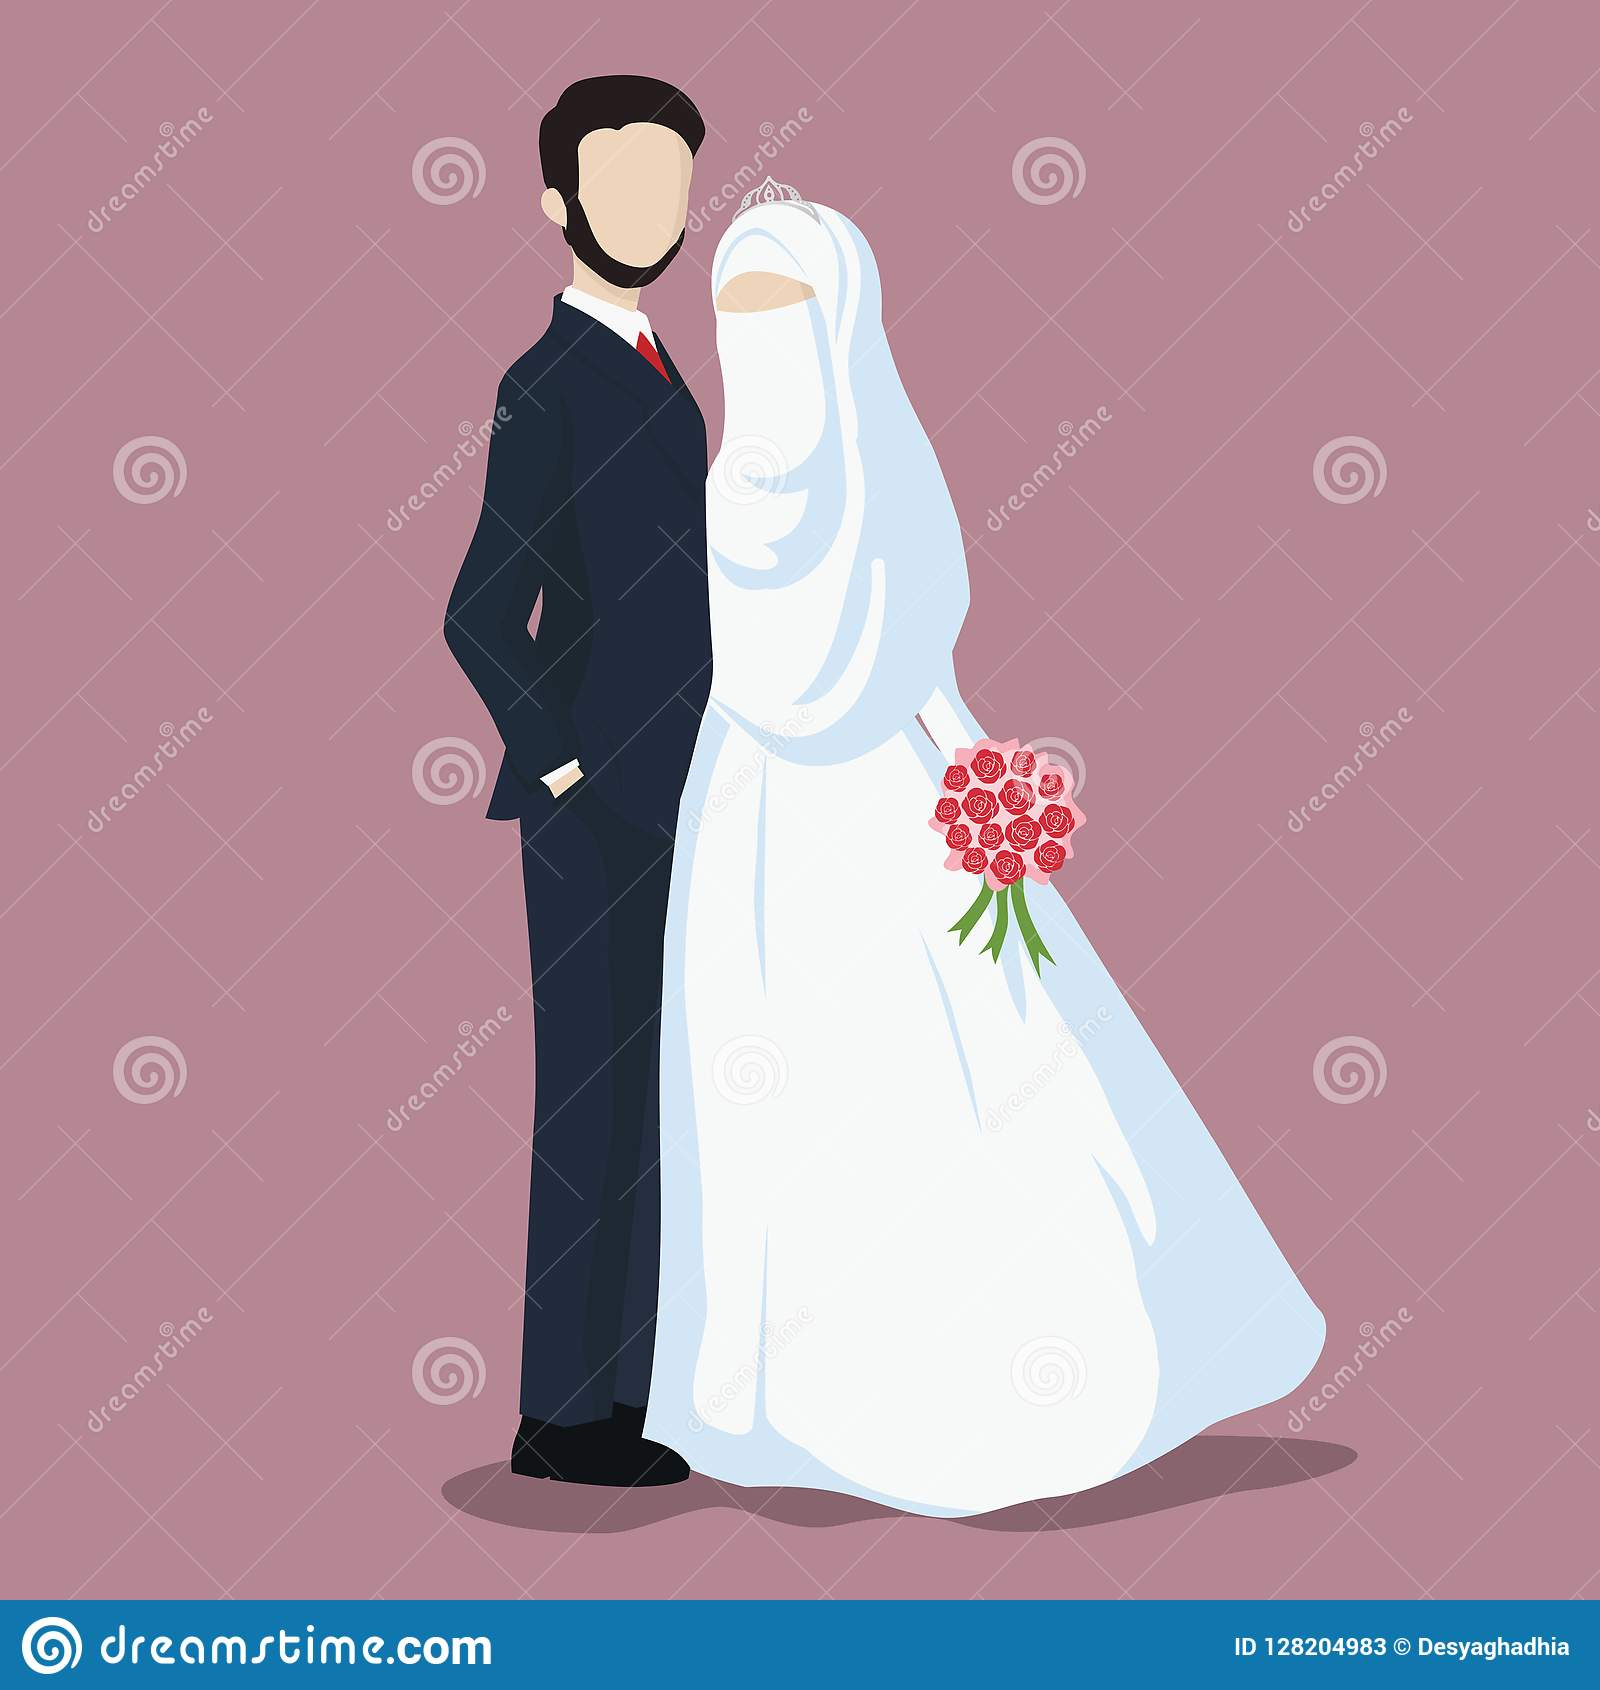 e6acf90bf9 Illustration Of Bride And Groom